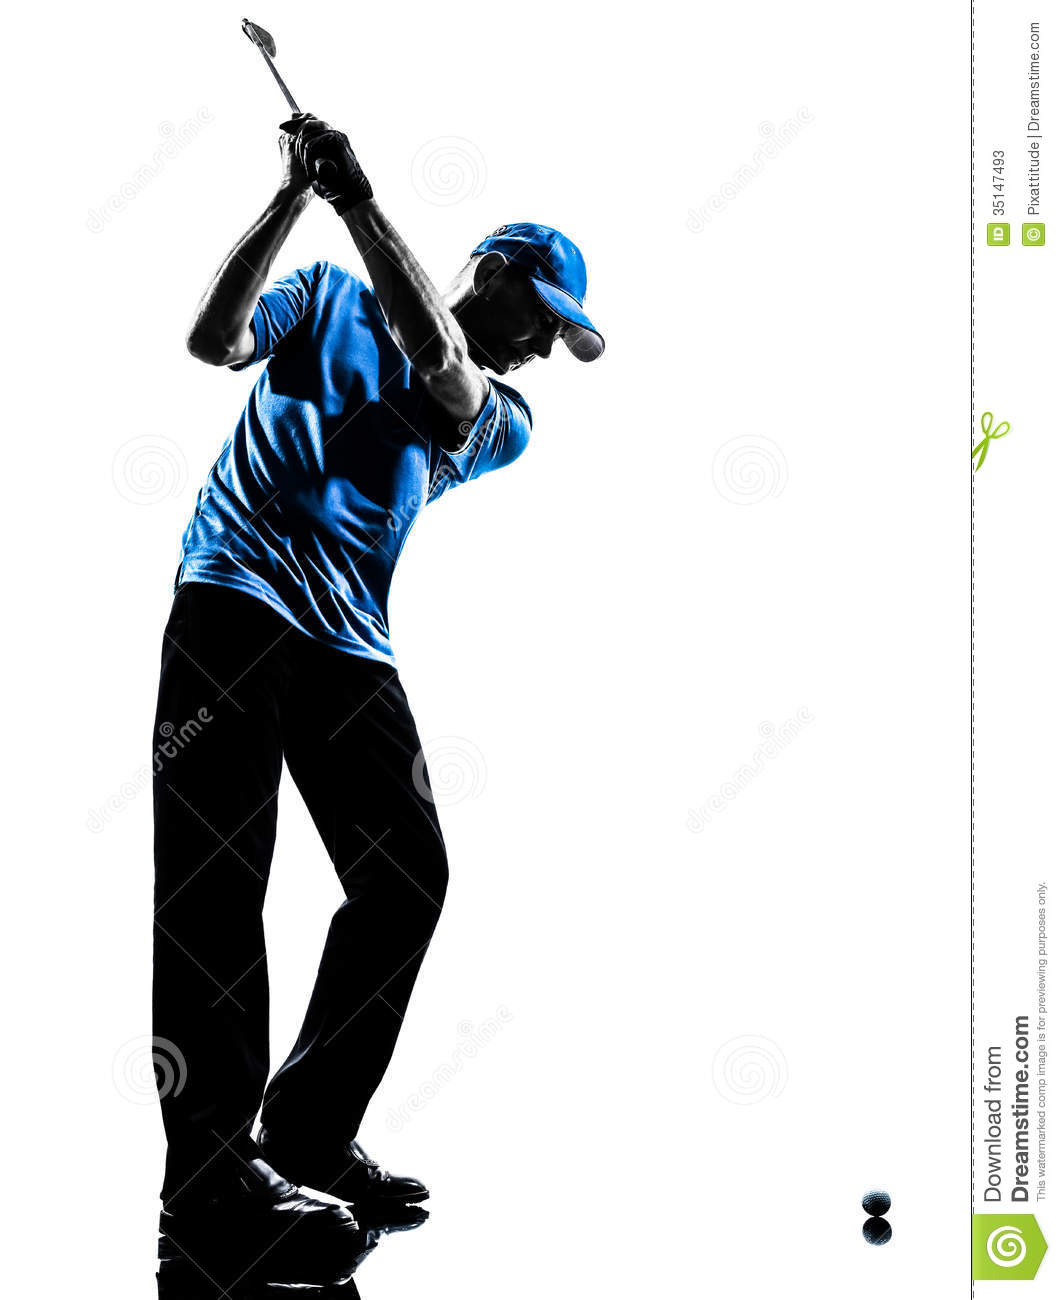 golf single guys Single length irons golf reviews, golf blog, golf news, and faqs -- i'm a recreational golfer who has shaved almost 20 strokes per round thanks to .